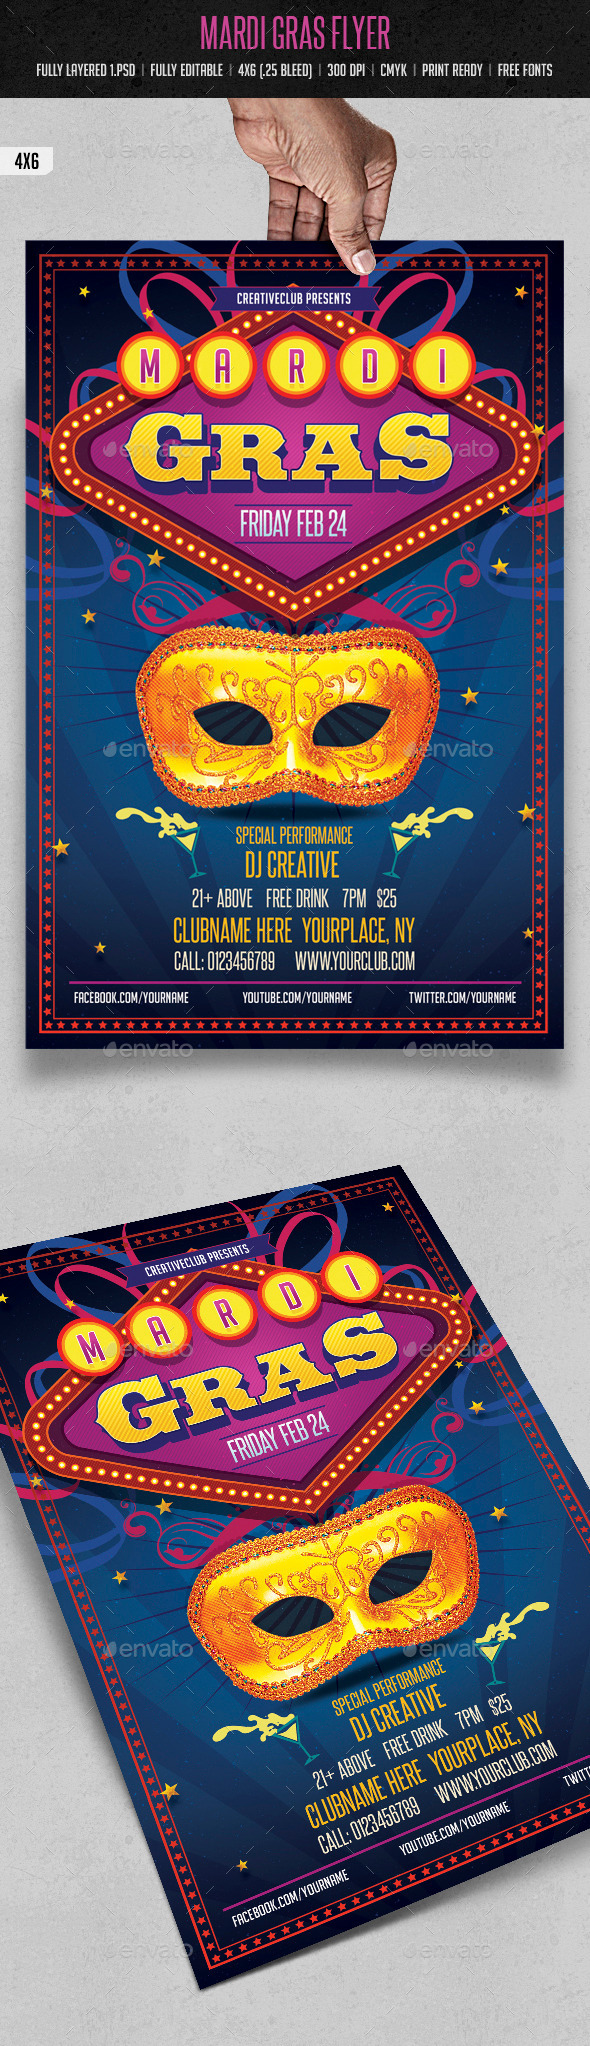 GraphicRiver Mardi Gras Flyer 9937232